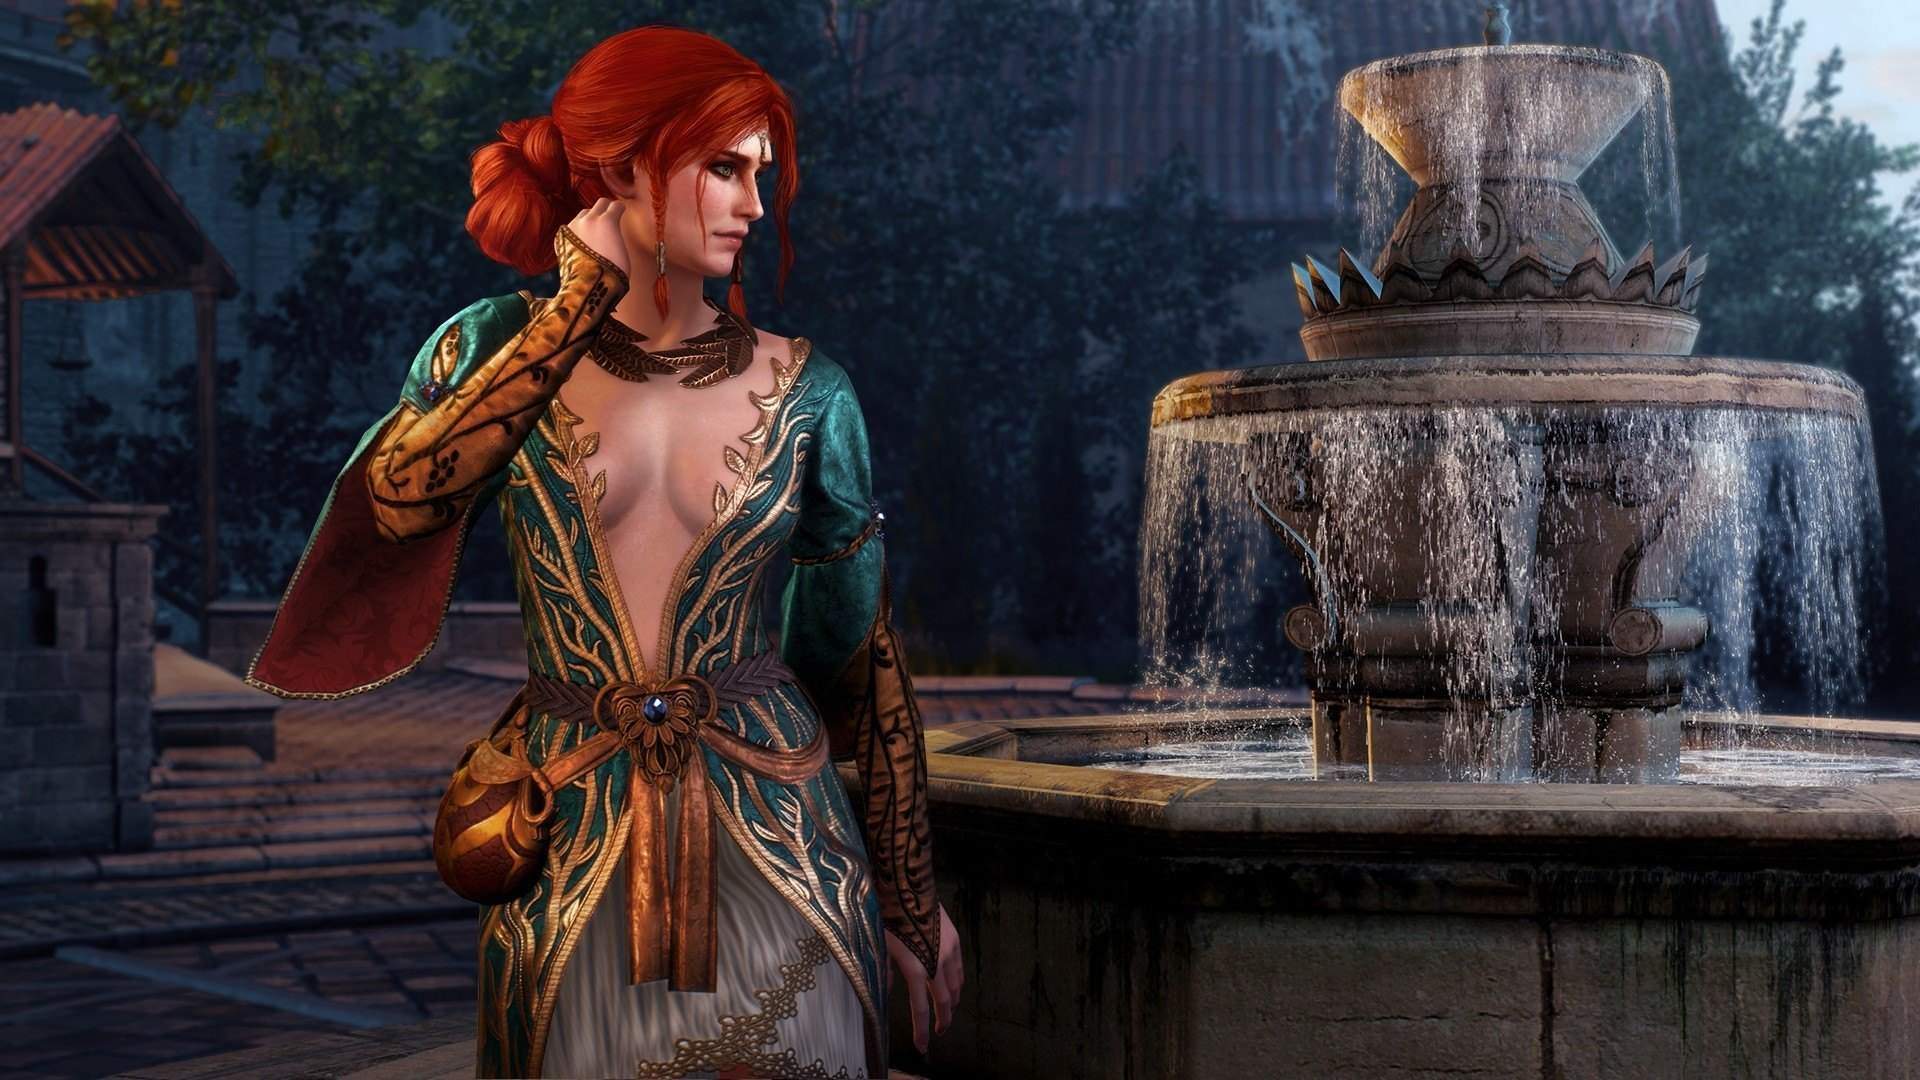 New Witcher 3 Patch to Expand Romance Options | Fextralife